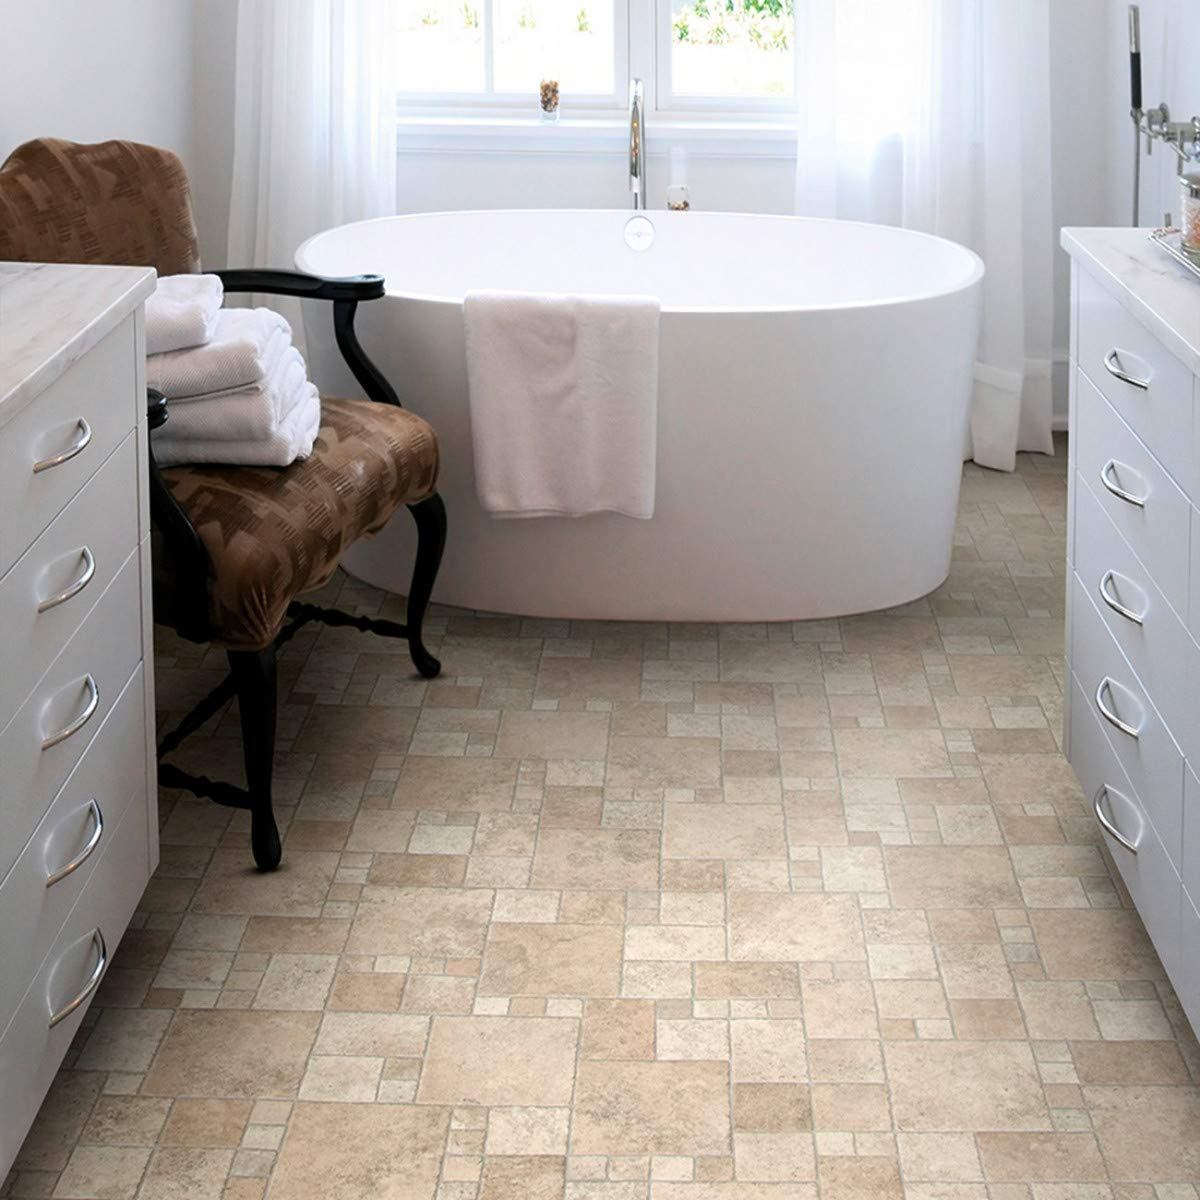 Natural Stone Tile Effect Cushioned Vinyl Flooring Sheet Lino Beige Cream Random Stone Design Kitchen Bathroom Extra Thick Roll Atlas Toucan 535 Multiple Sizes Available Sample Buy Online In